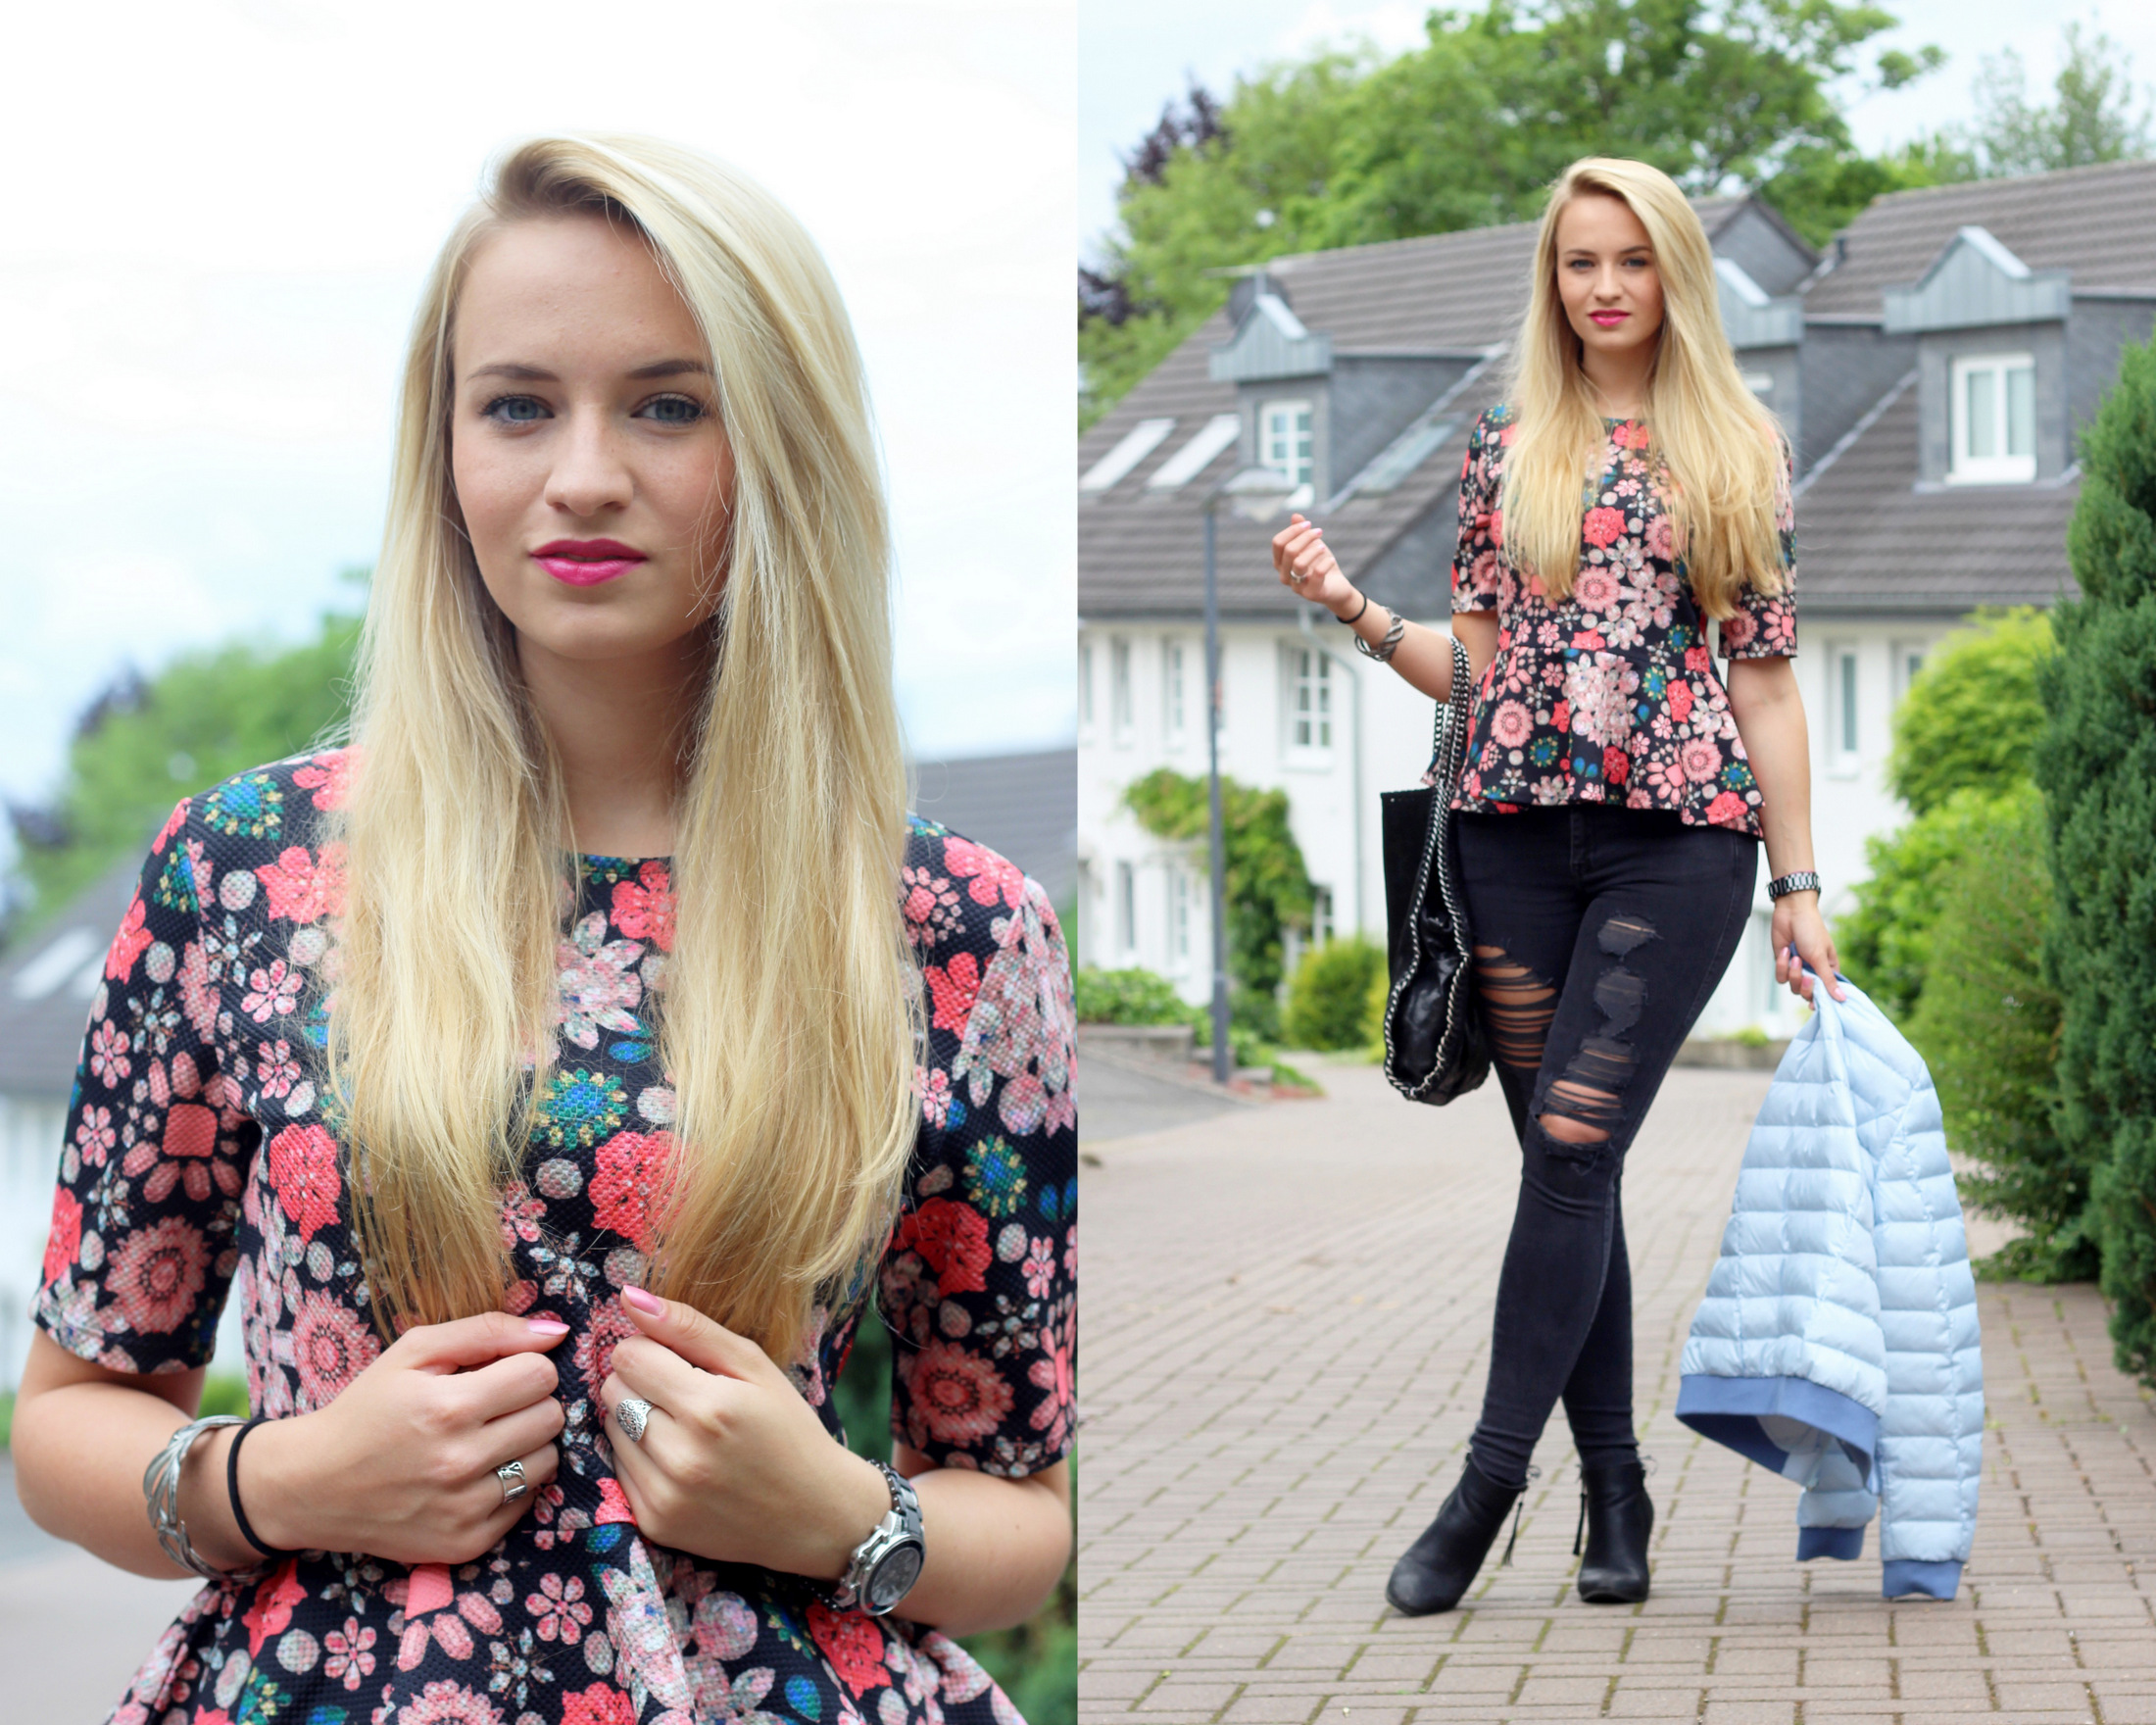 lightweight-jacket-peplum-shirt-flowers-skinny-jeans-ripped-destroyed-jeans (3)